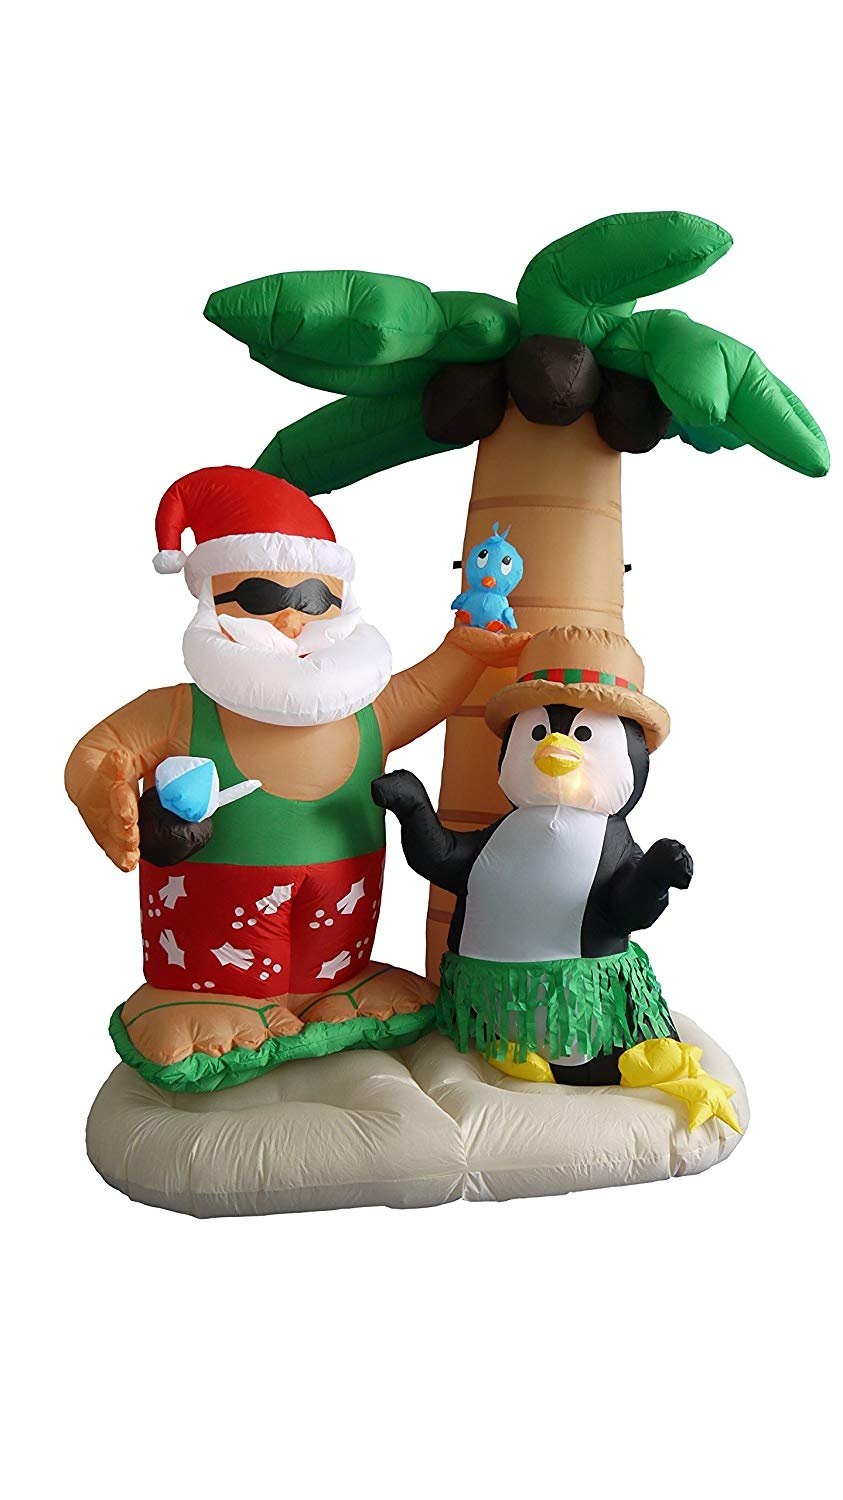 7 Foot Inflatable Santa Claus & Penguin on an Island w/ Palm Tree